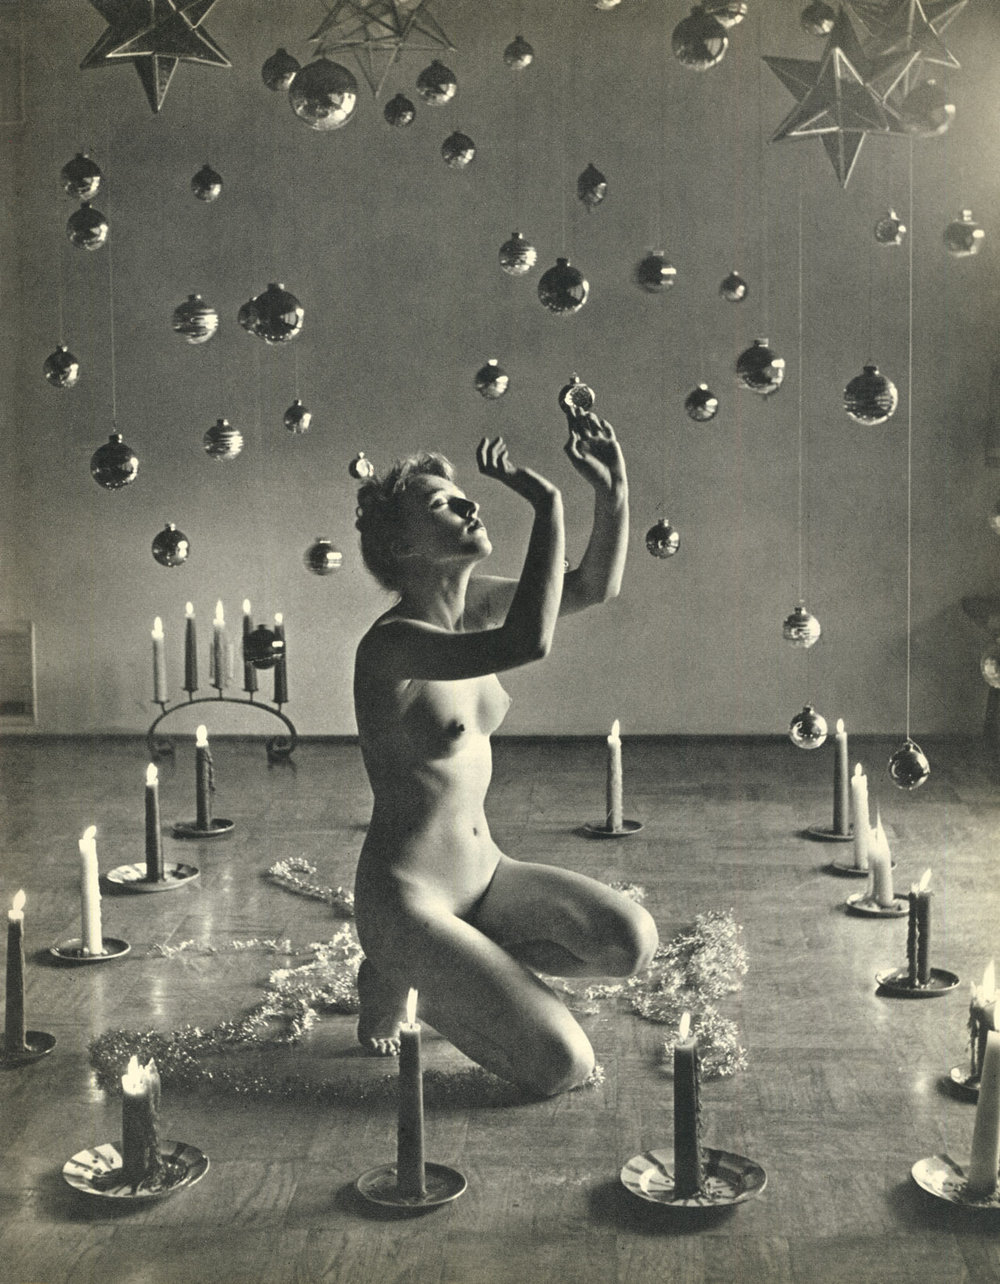 Andre_de_Dienes-night-rooms.jpg